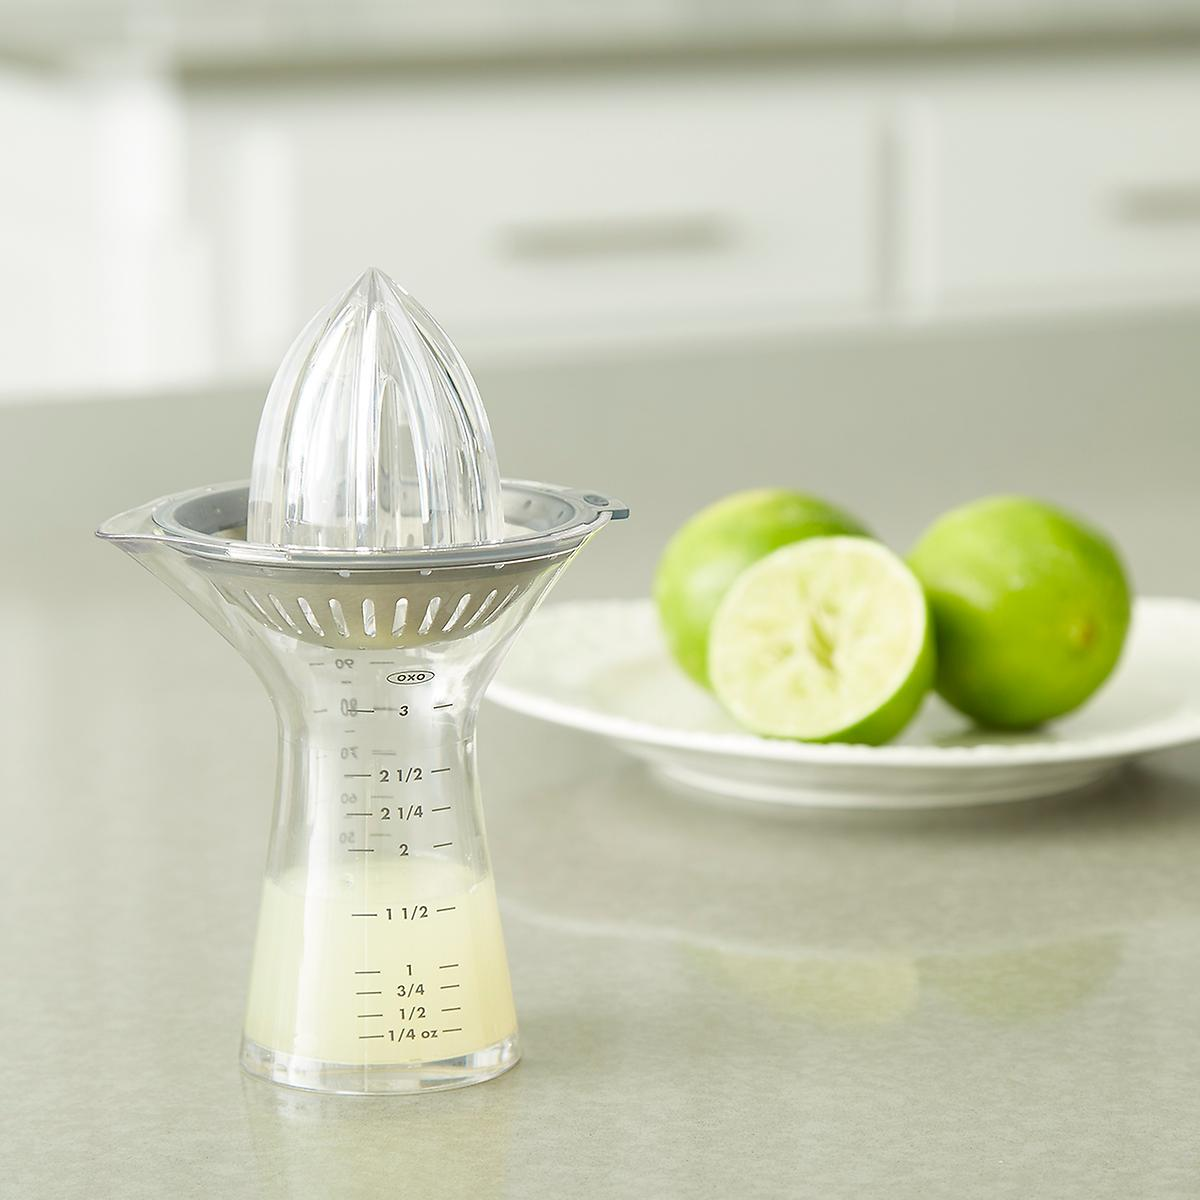 OXO Stainless Steel Citrus Juicer